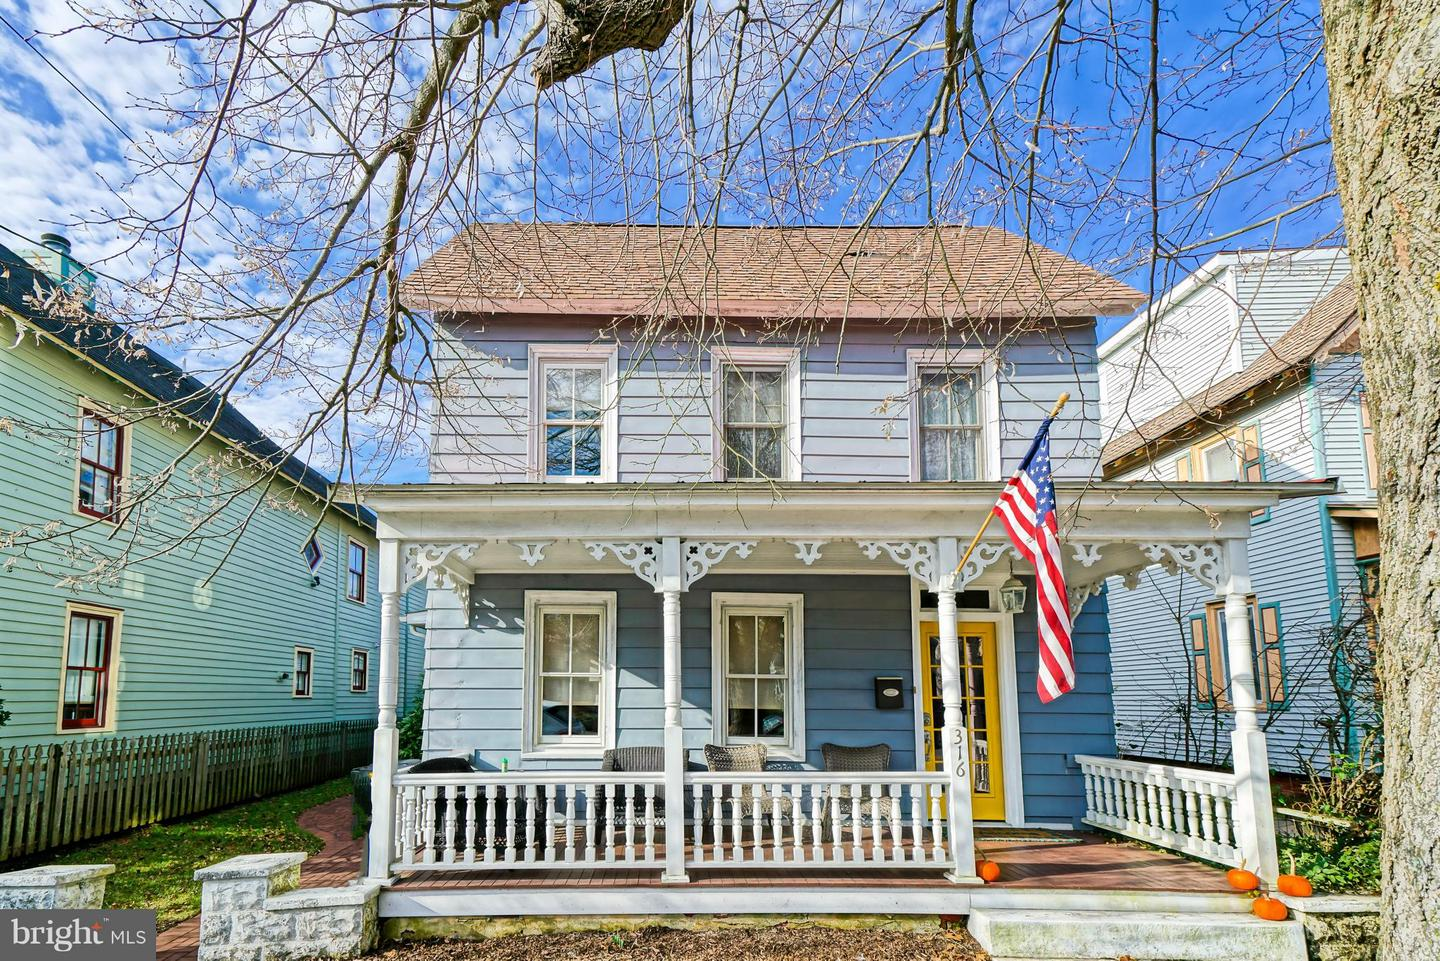 DESU123246-301164756324-2019-01-11-16-38-00 316 Savannah Rd | Lewes, DE Real Estate For Sale | MLS# Desu123246  - Lee Ann Group